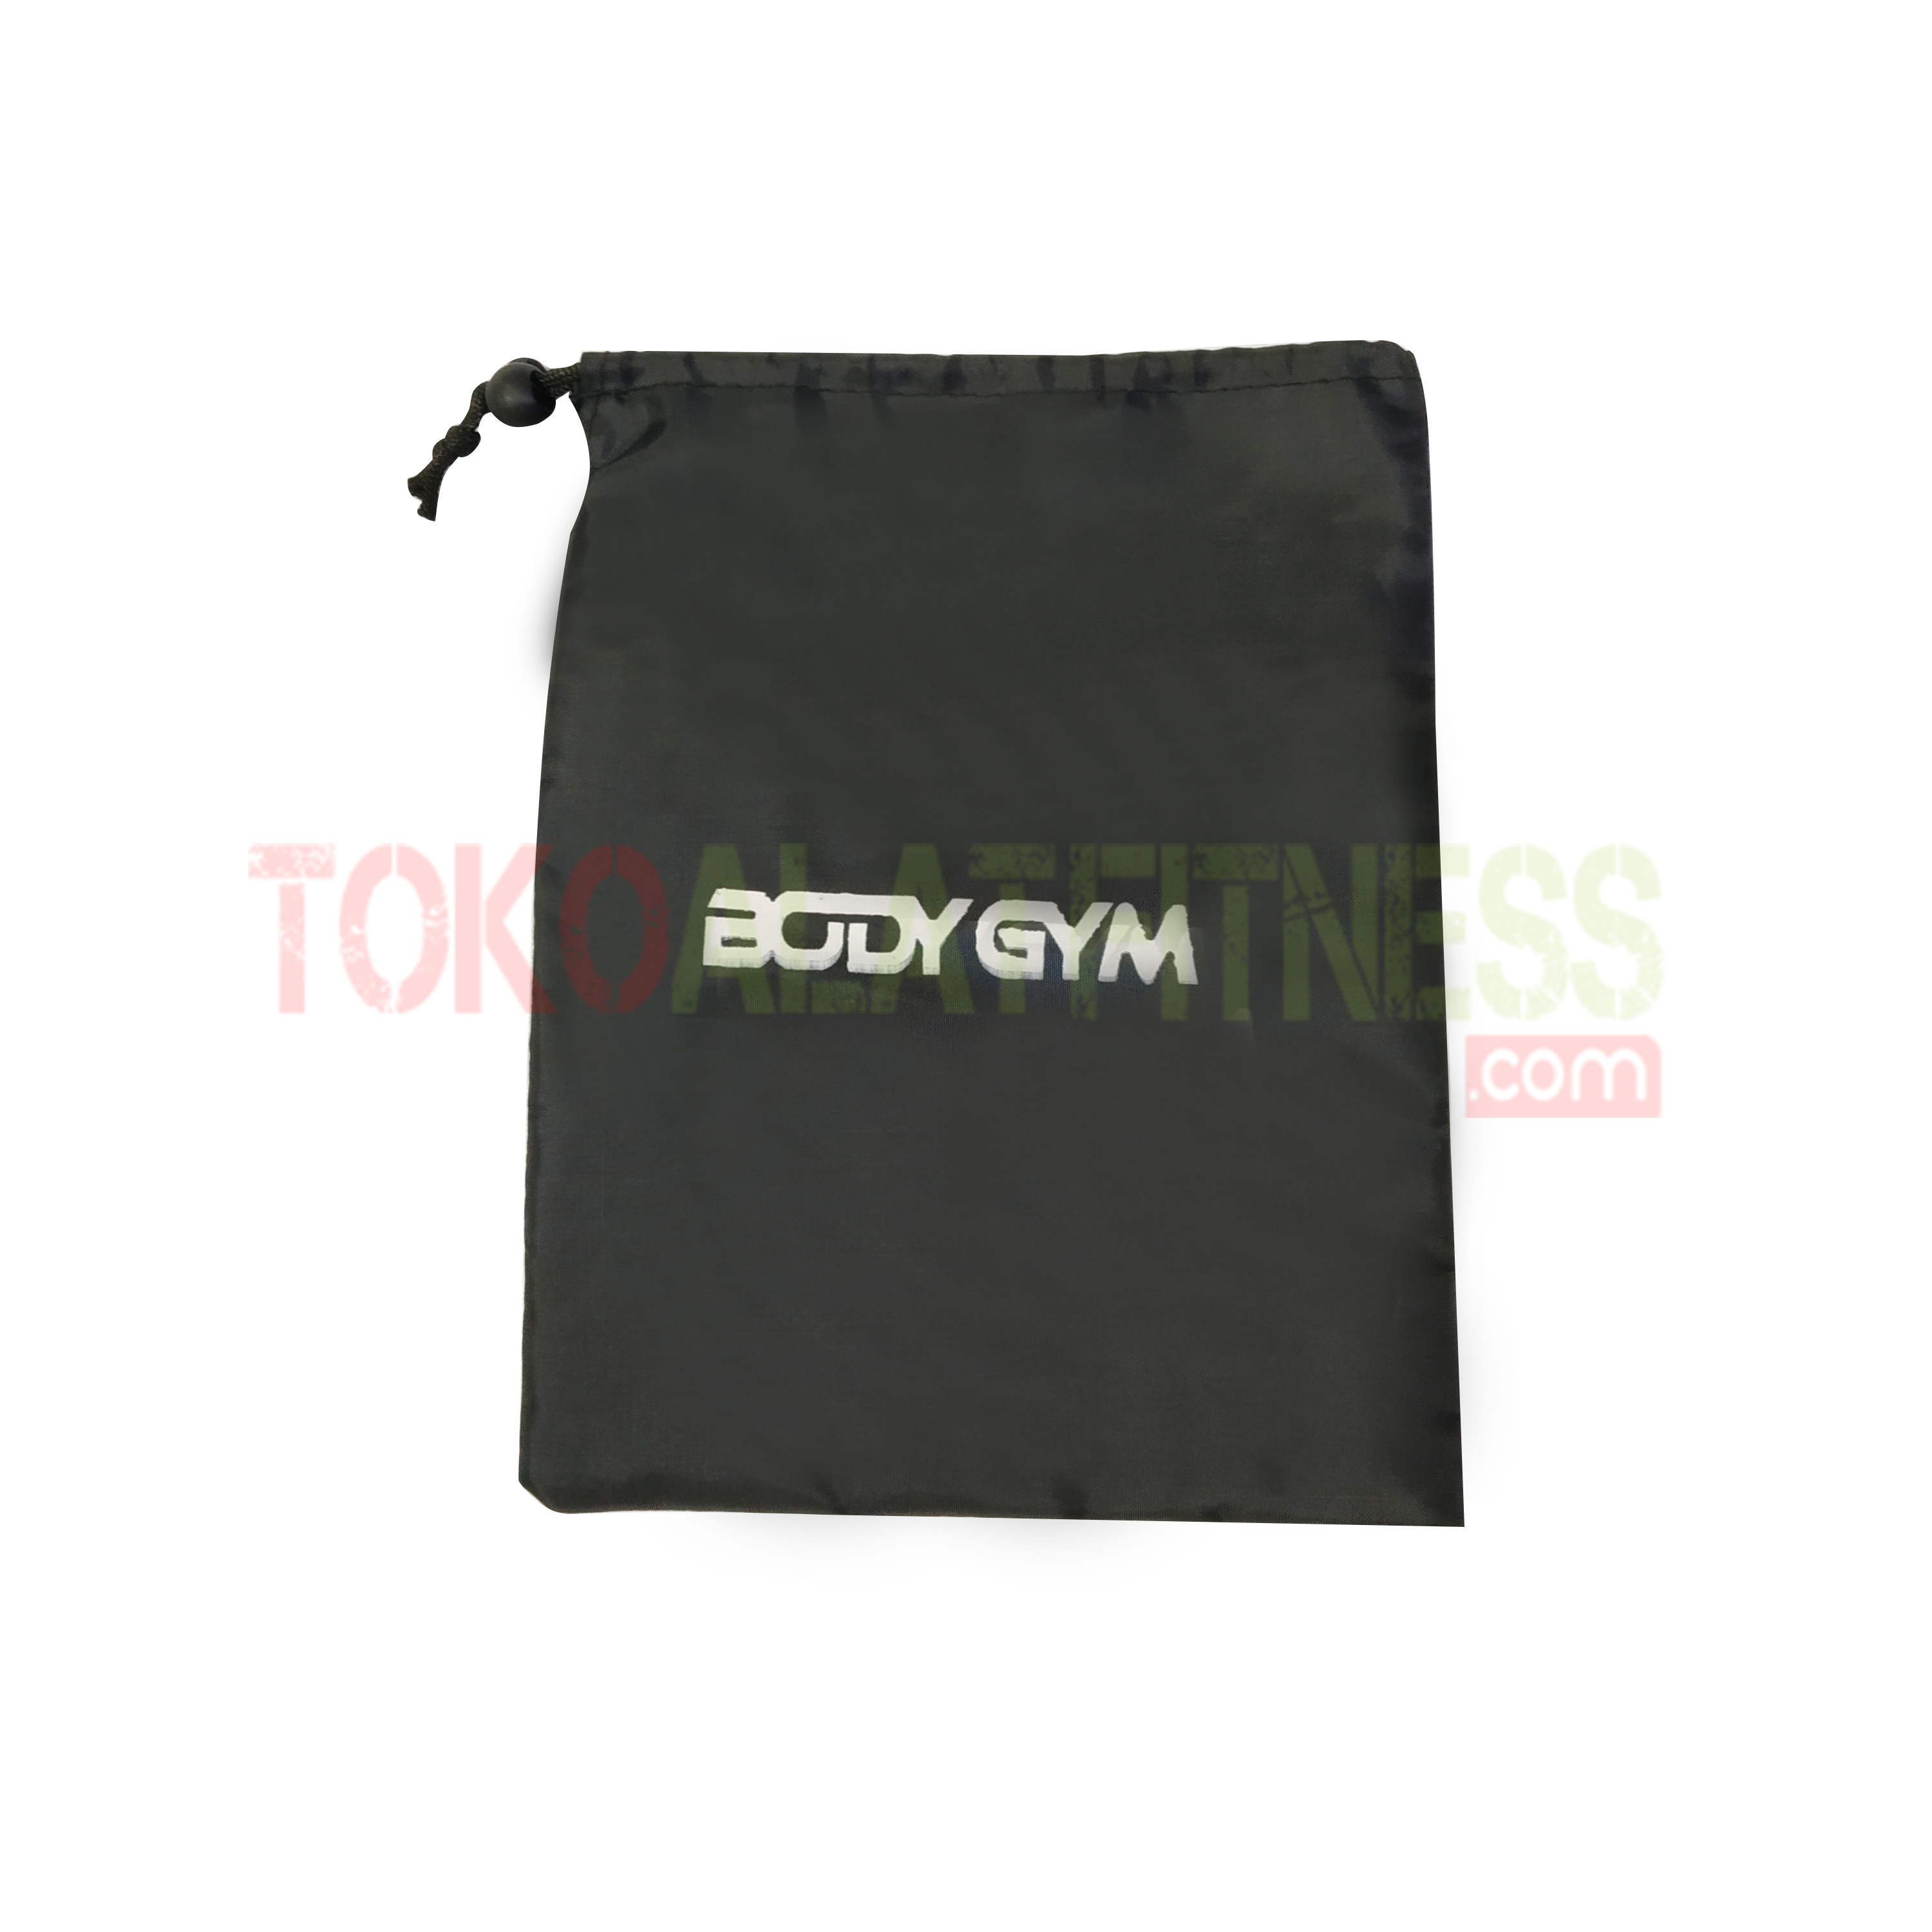 BAG BODY GYM WTM - Resistance Band / Strap with Handle Biru 25 Lbs Body Gym - ASSRB18B